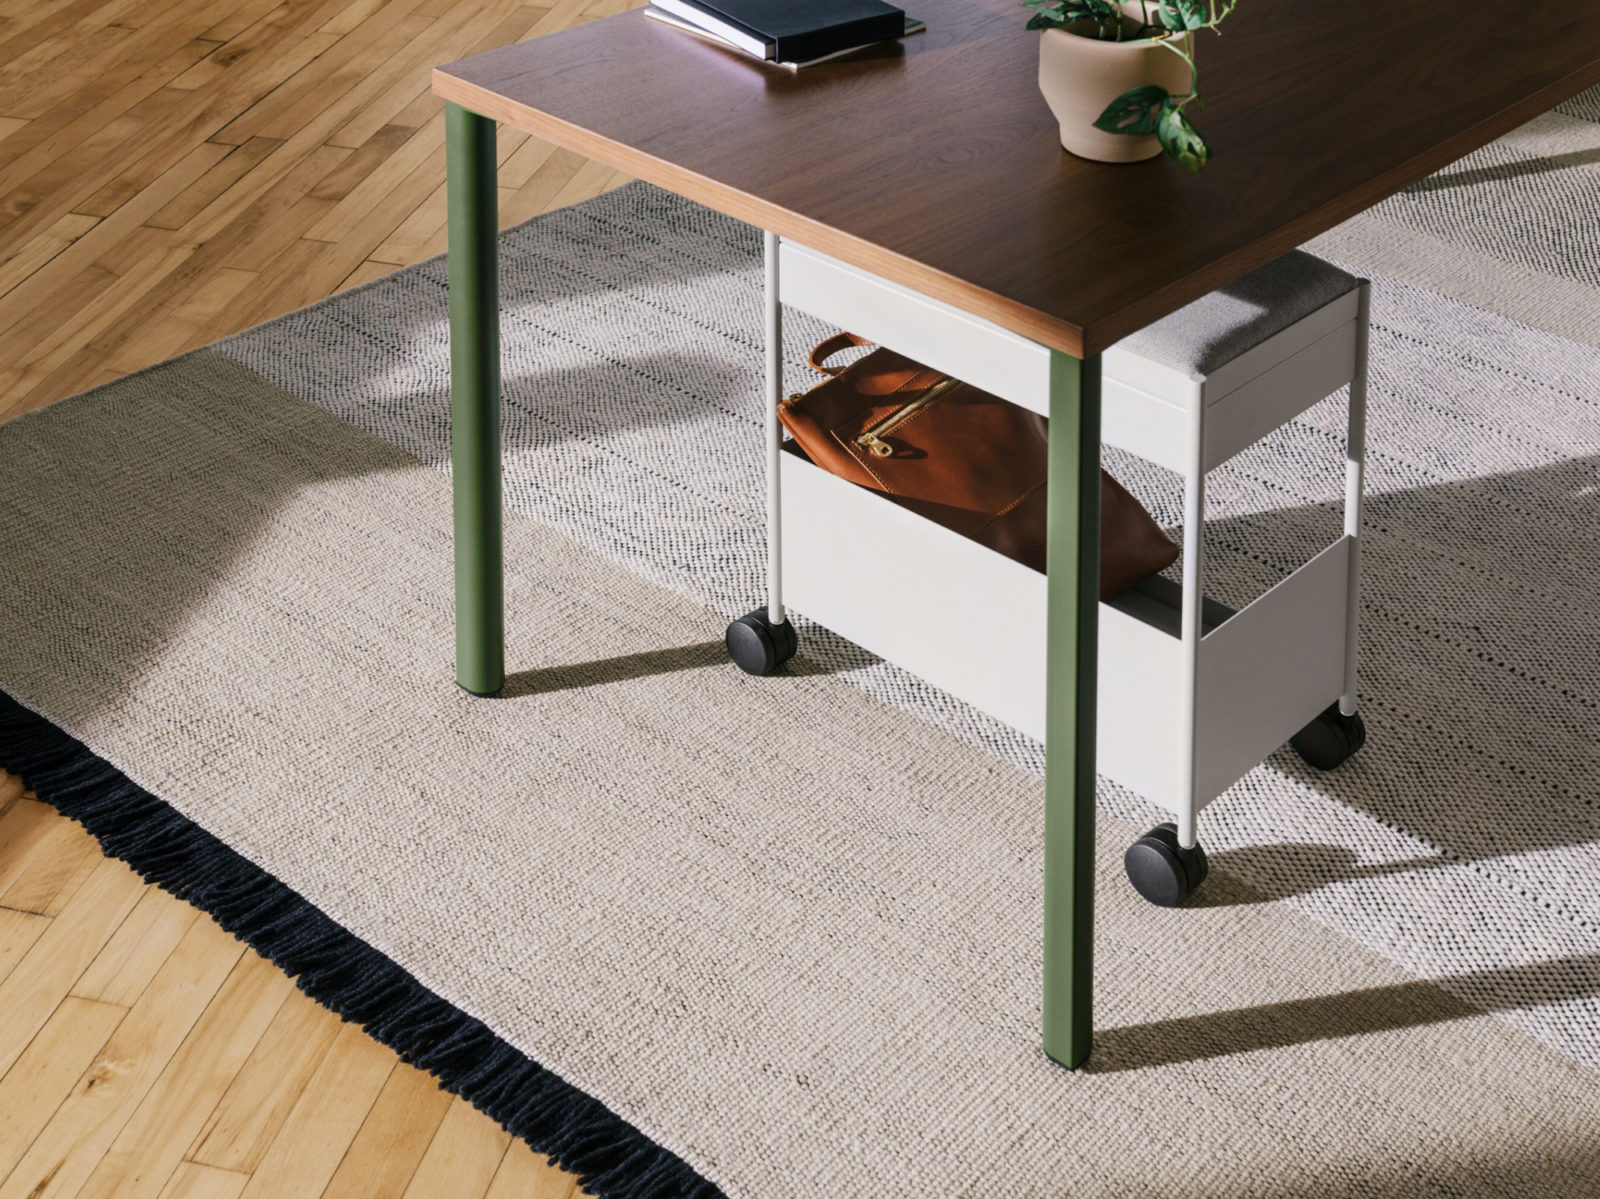 Oe1 product gallery 08